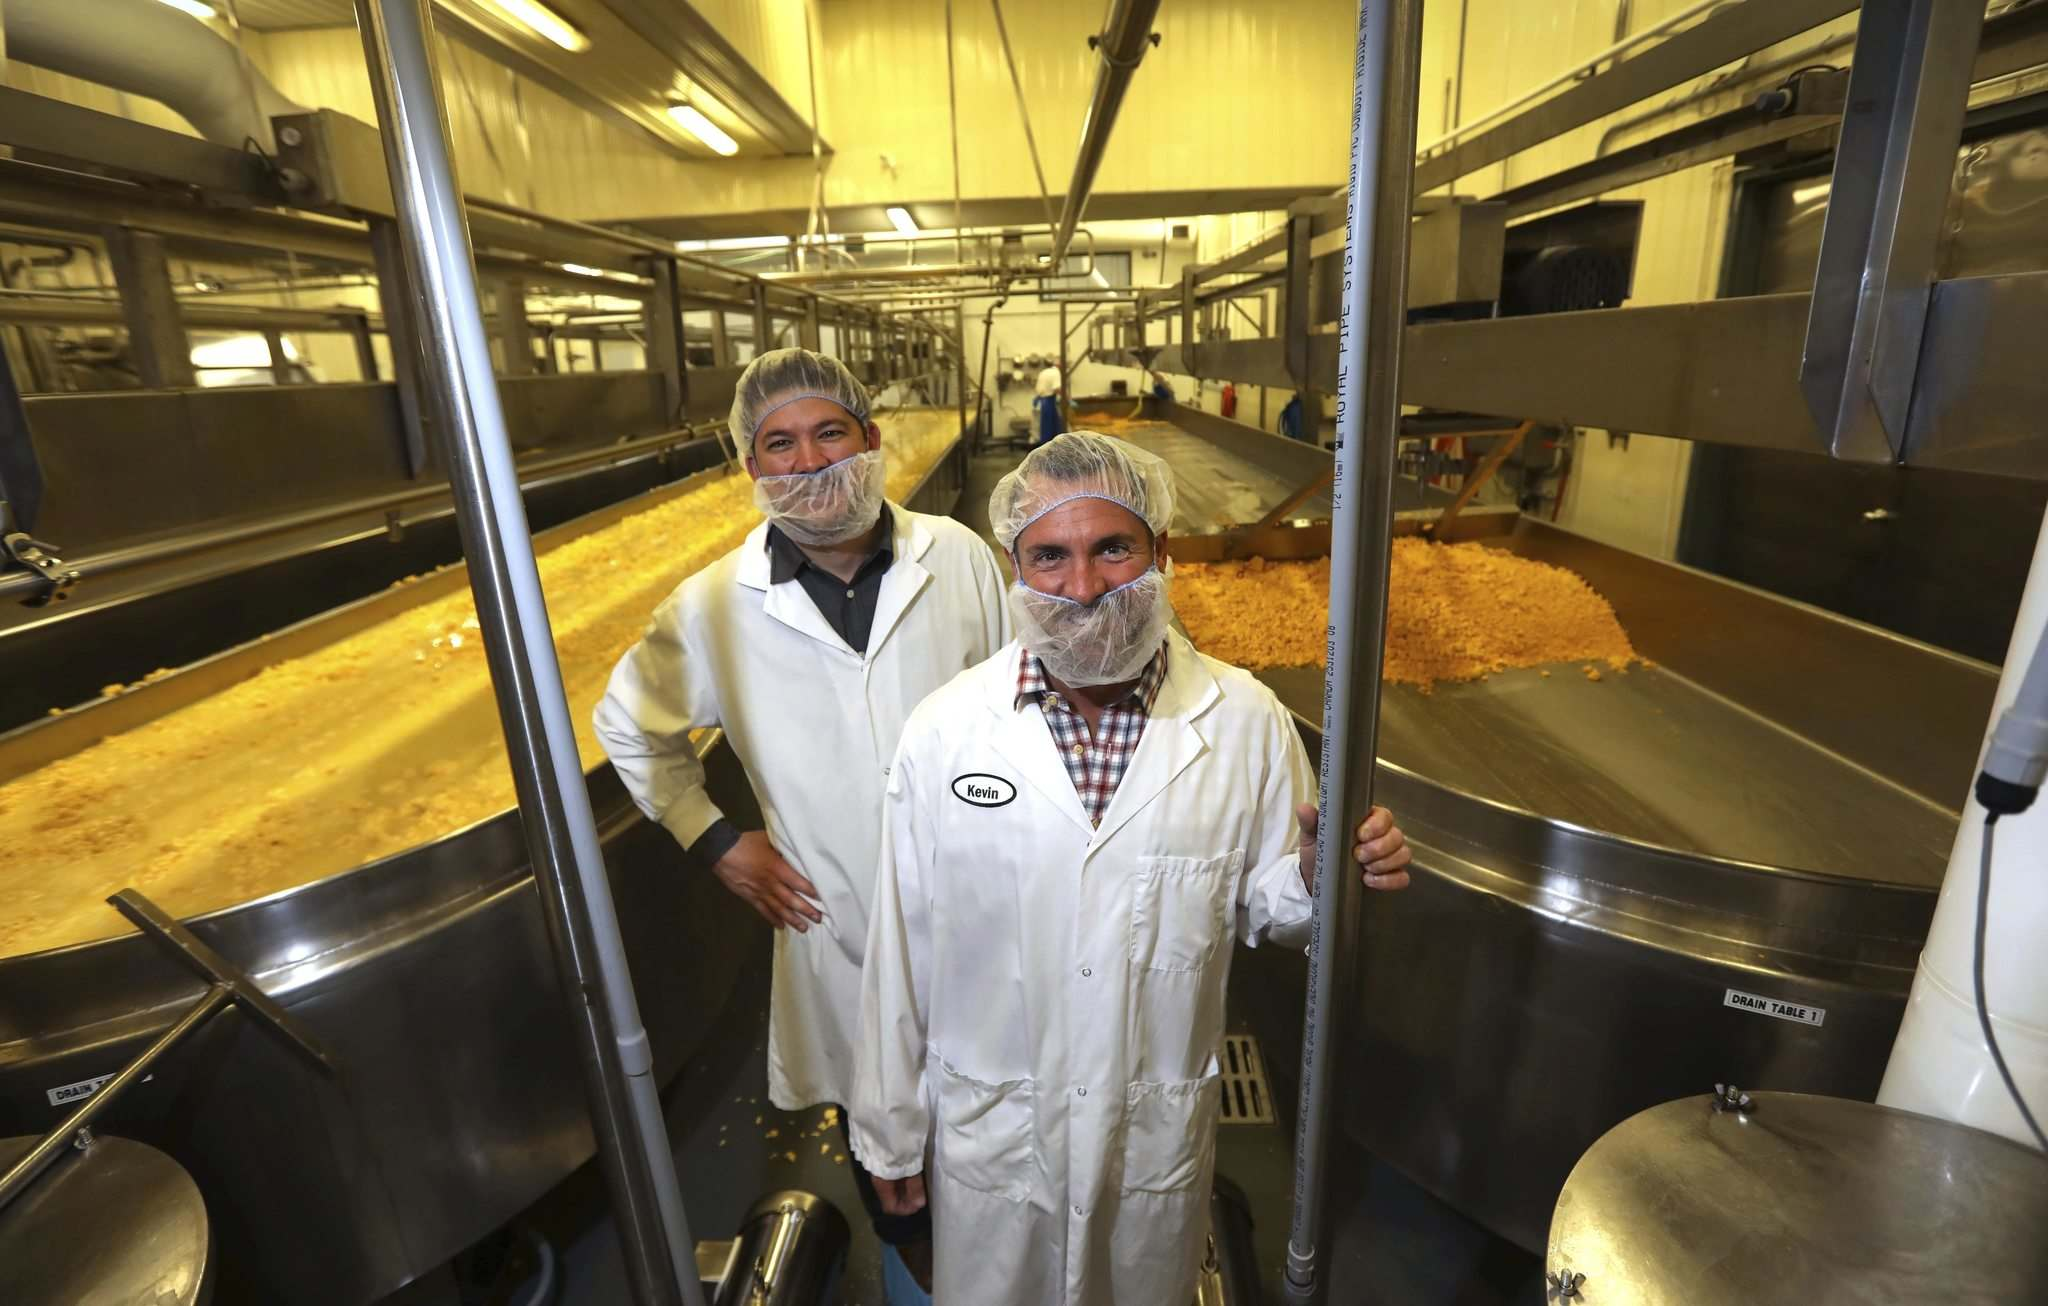 RUTH BONNEVILLE / WINNIPEG FREE PRESS</p><p>Bothwell Cheese vice-president Mike Raftis (left), pictured with president Kevin Thomson, says he believes innovation and efficiency will help the company face increased competition from European cheese.</p>